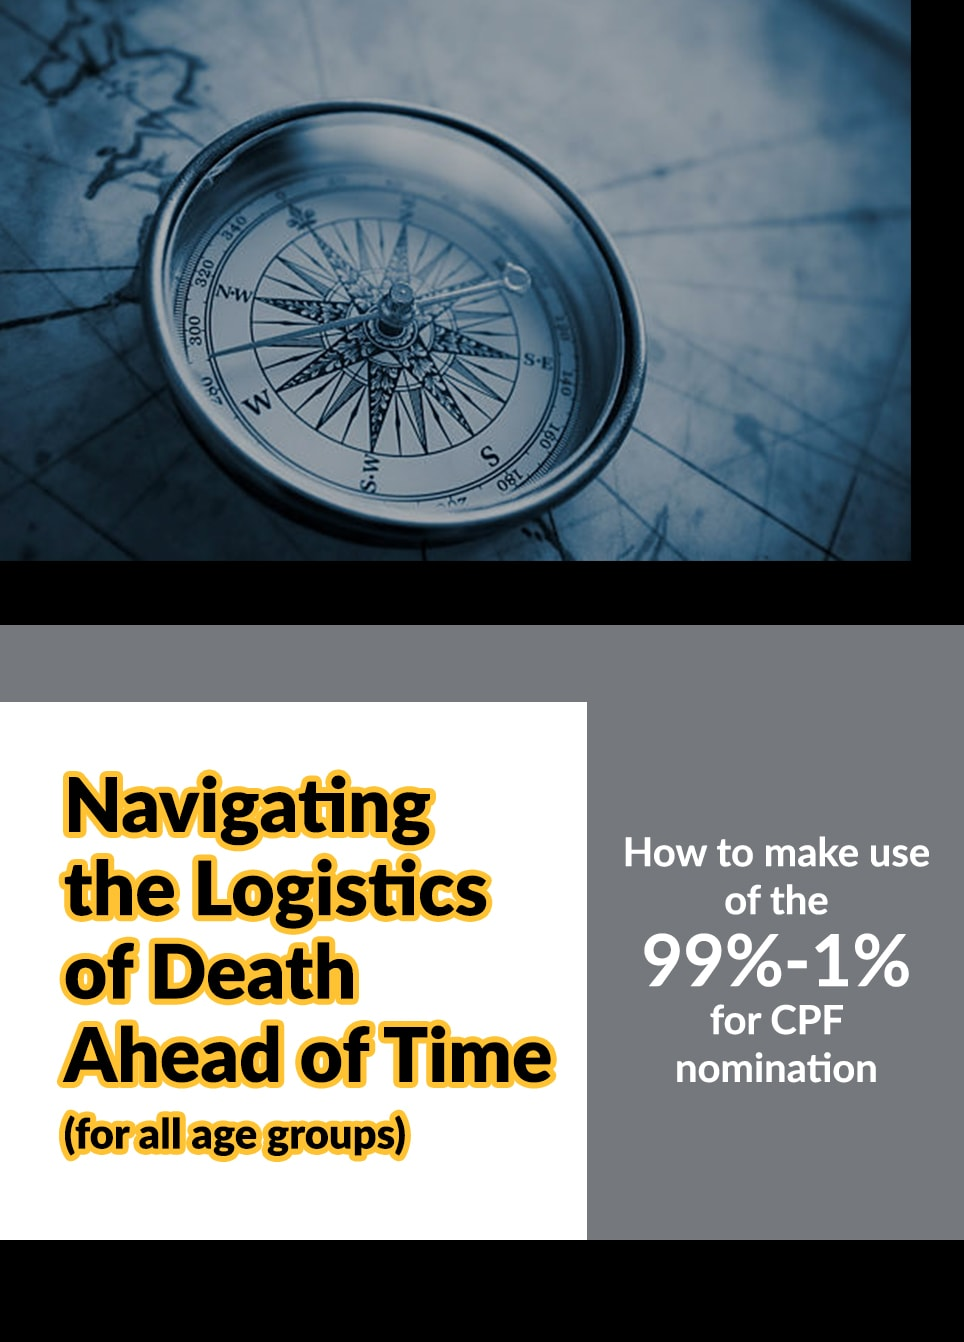 Navigating the Logistic of Death Ahead of Time